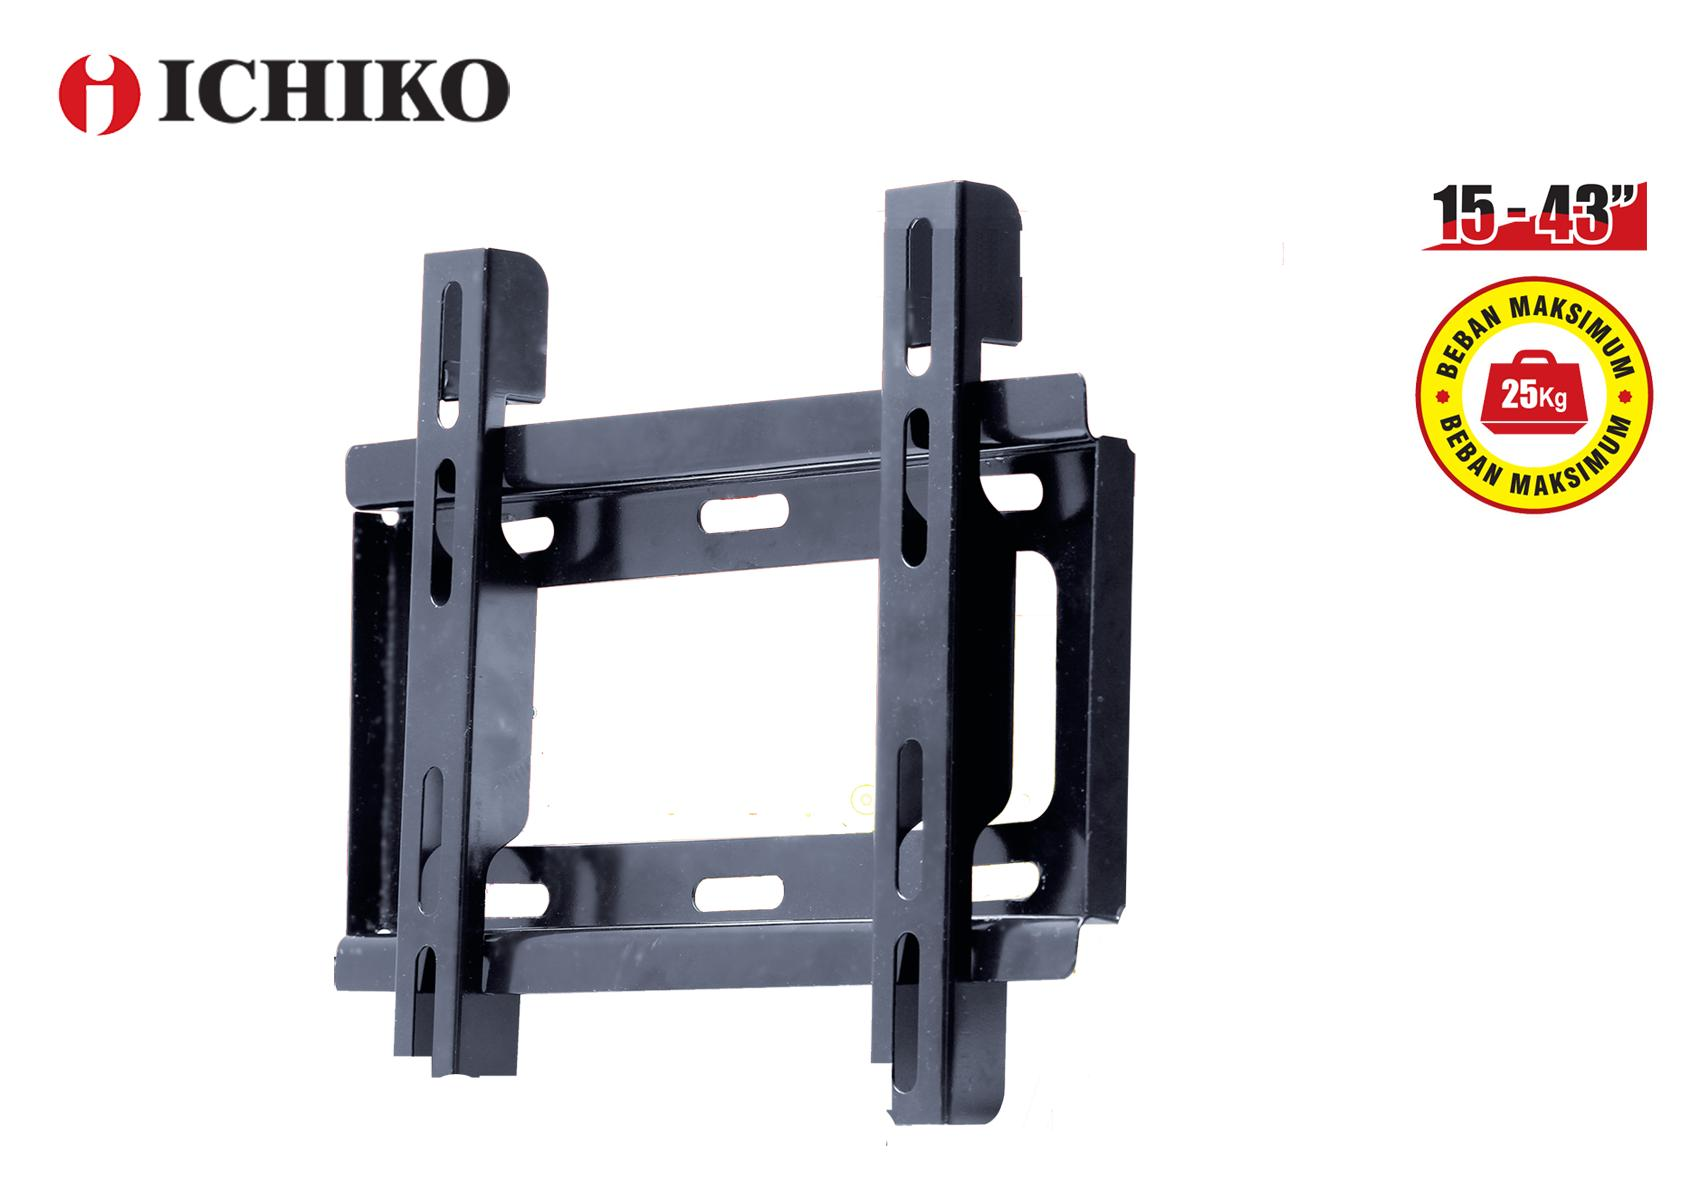 ICHIKO Bracket LED TV 15 - 43 inch (Model BRC99)